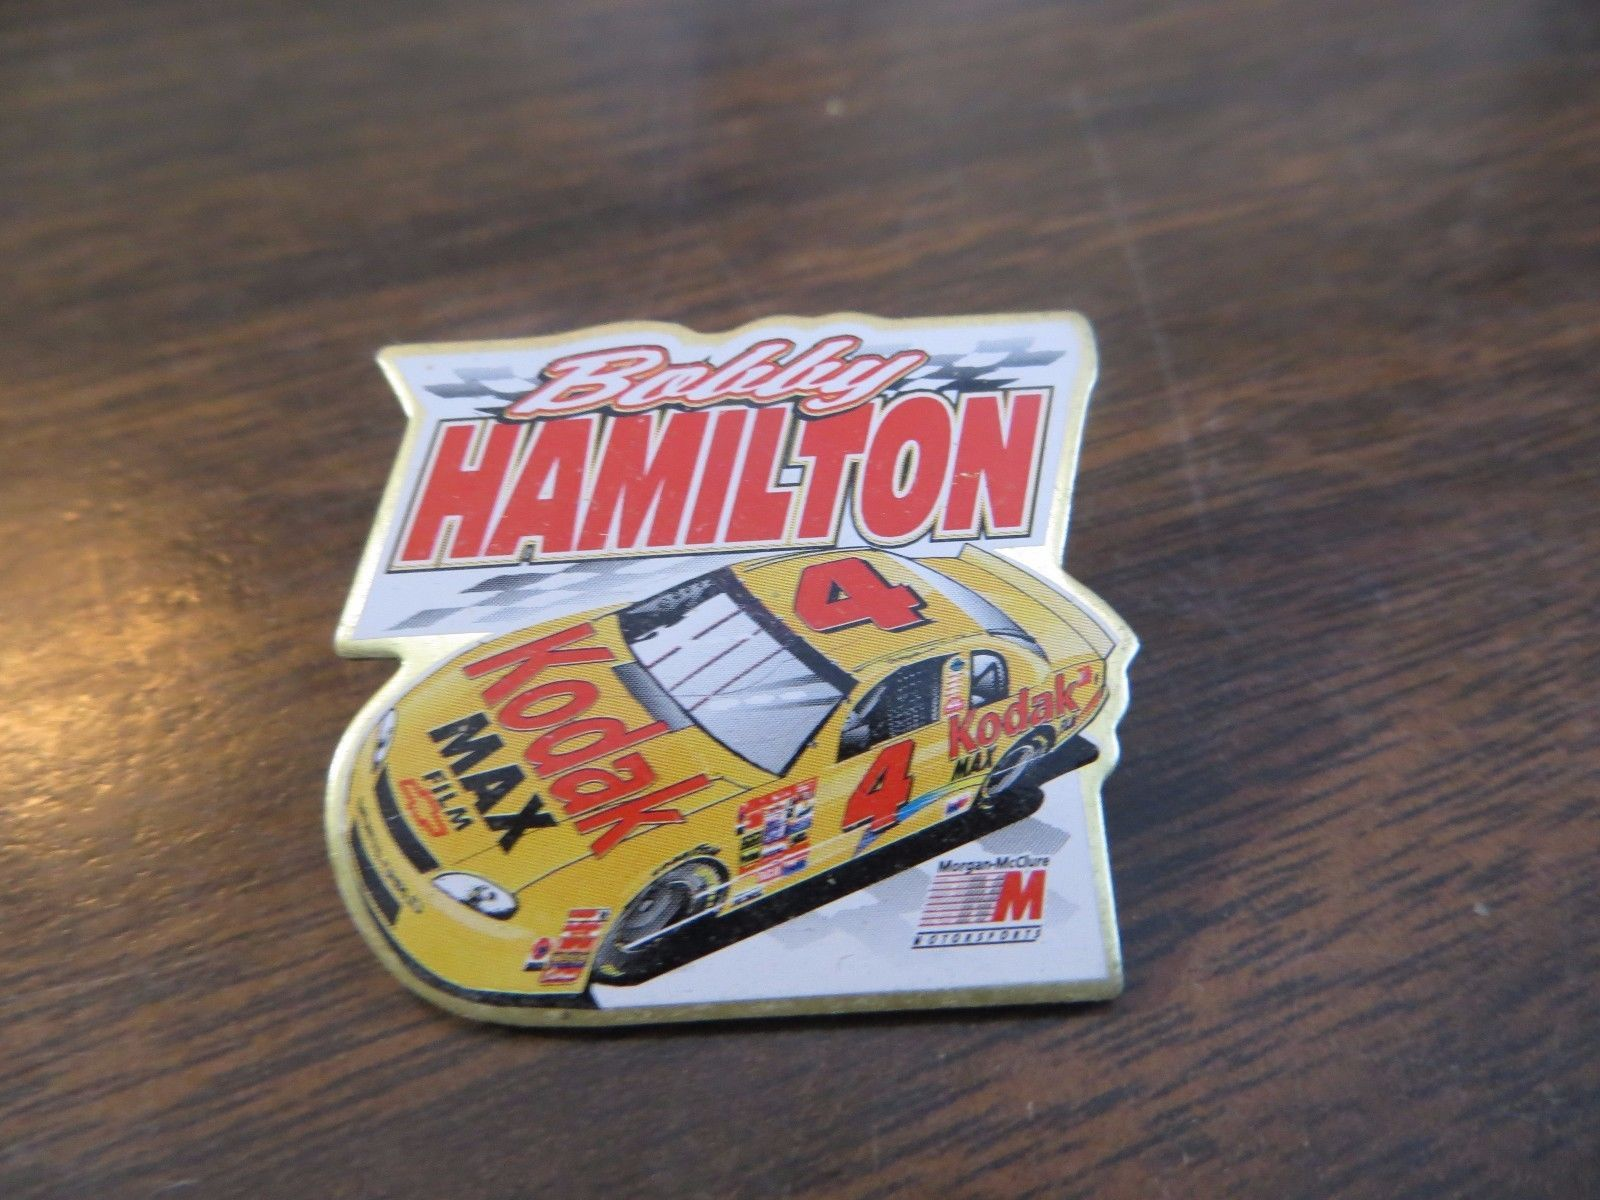 Bobby Hamilton Kodak Max #4 Nascar race car driver sponsor advertising pin 1999